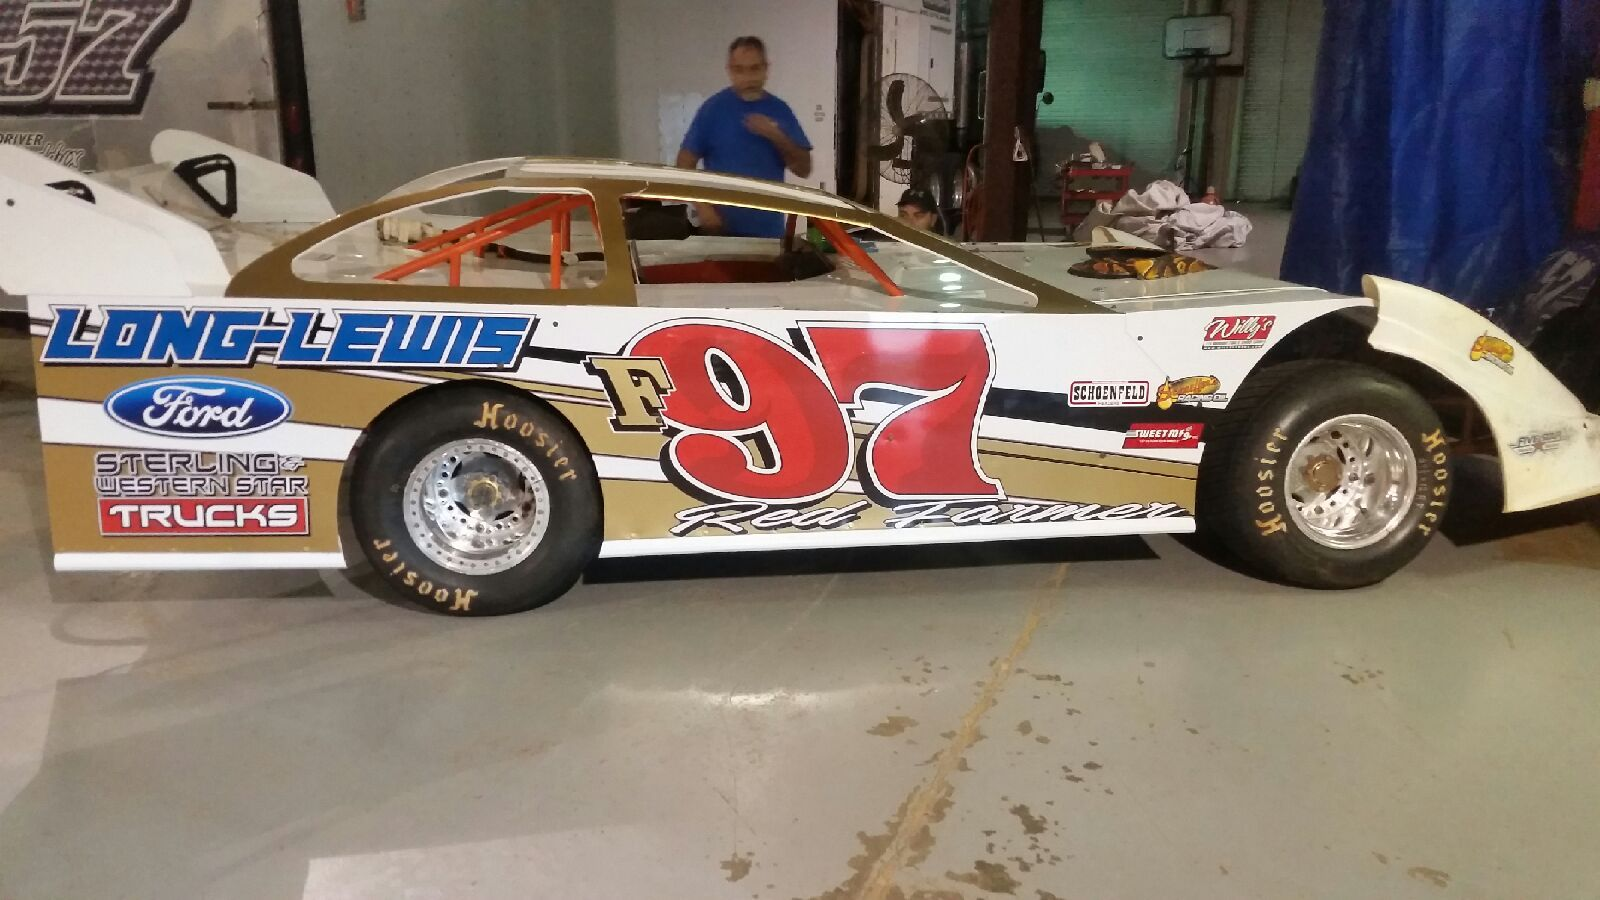 My Fathers Car Red Farmer Dirt Late Models Old Race Cars Ford Racing